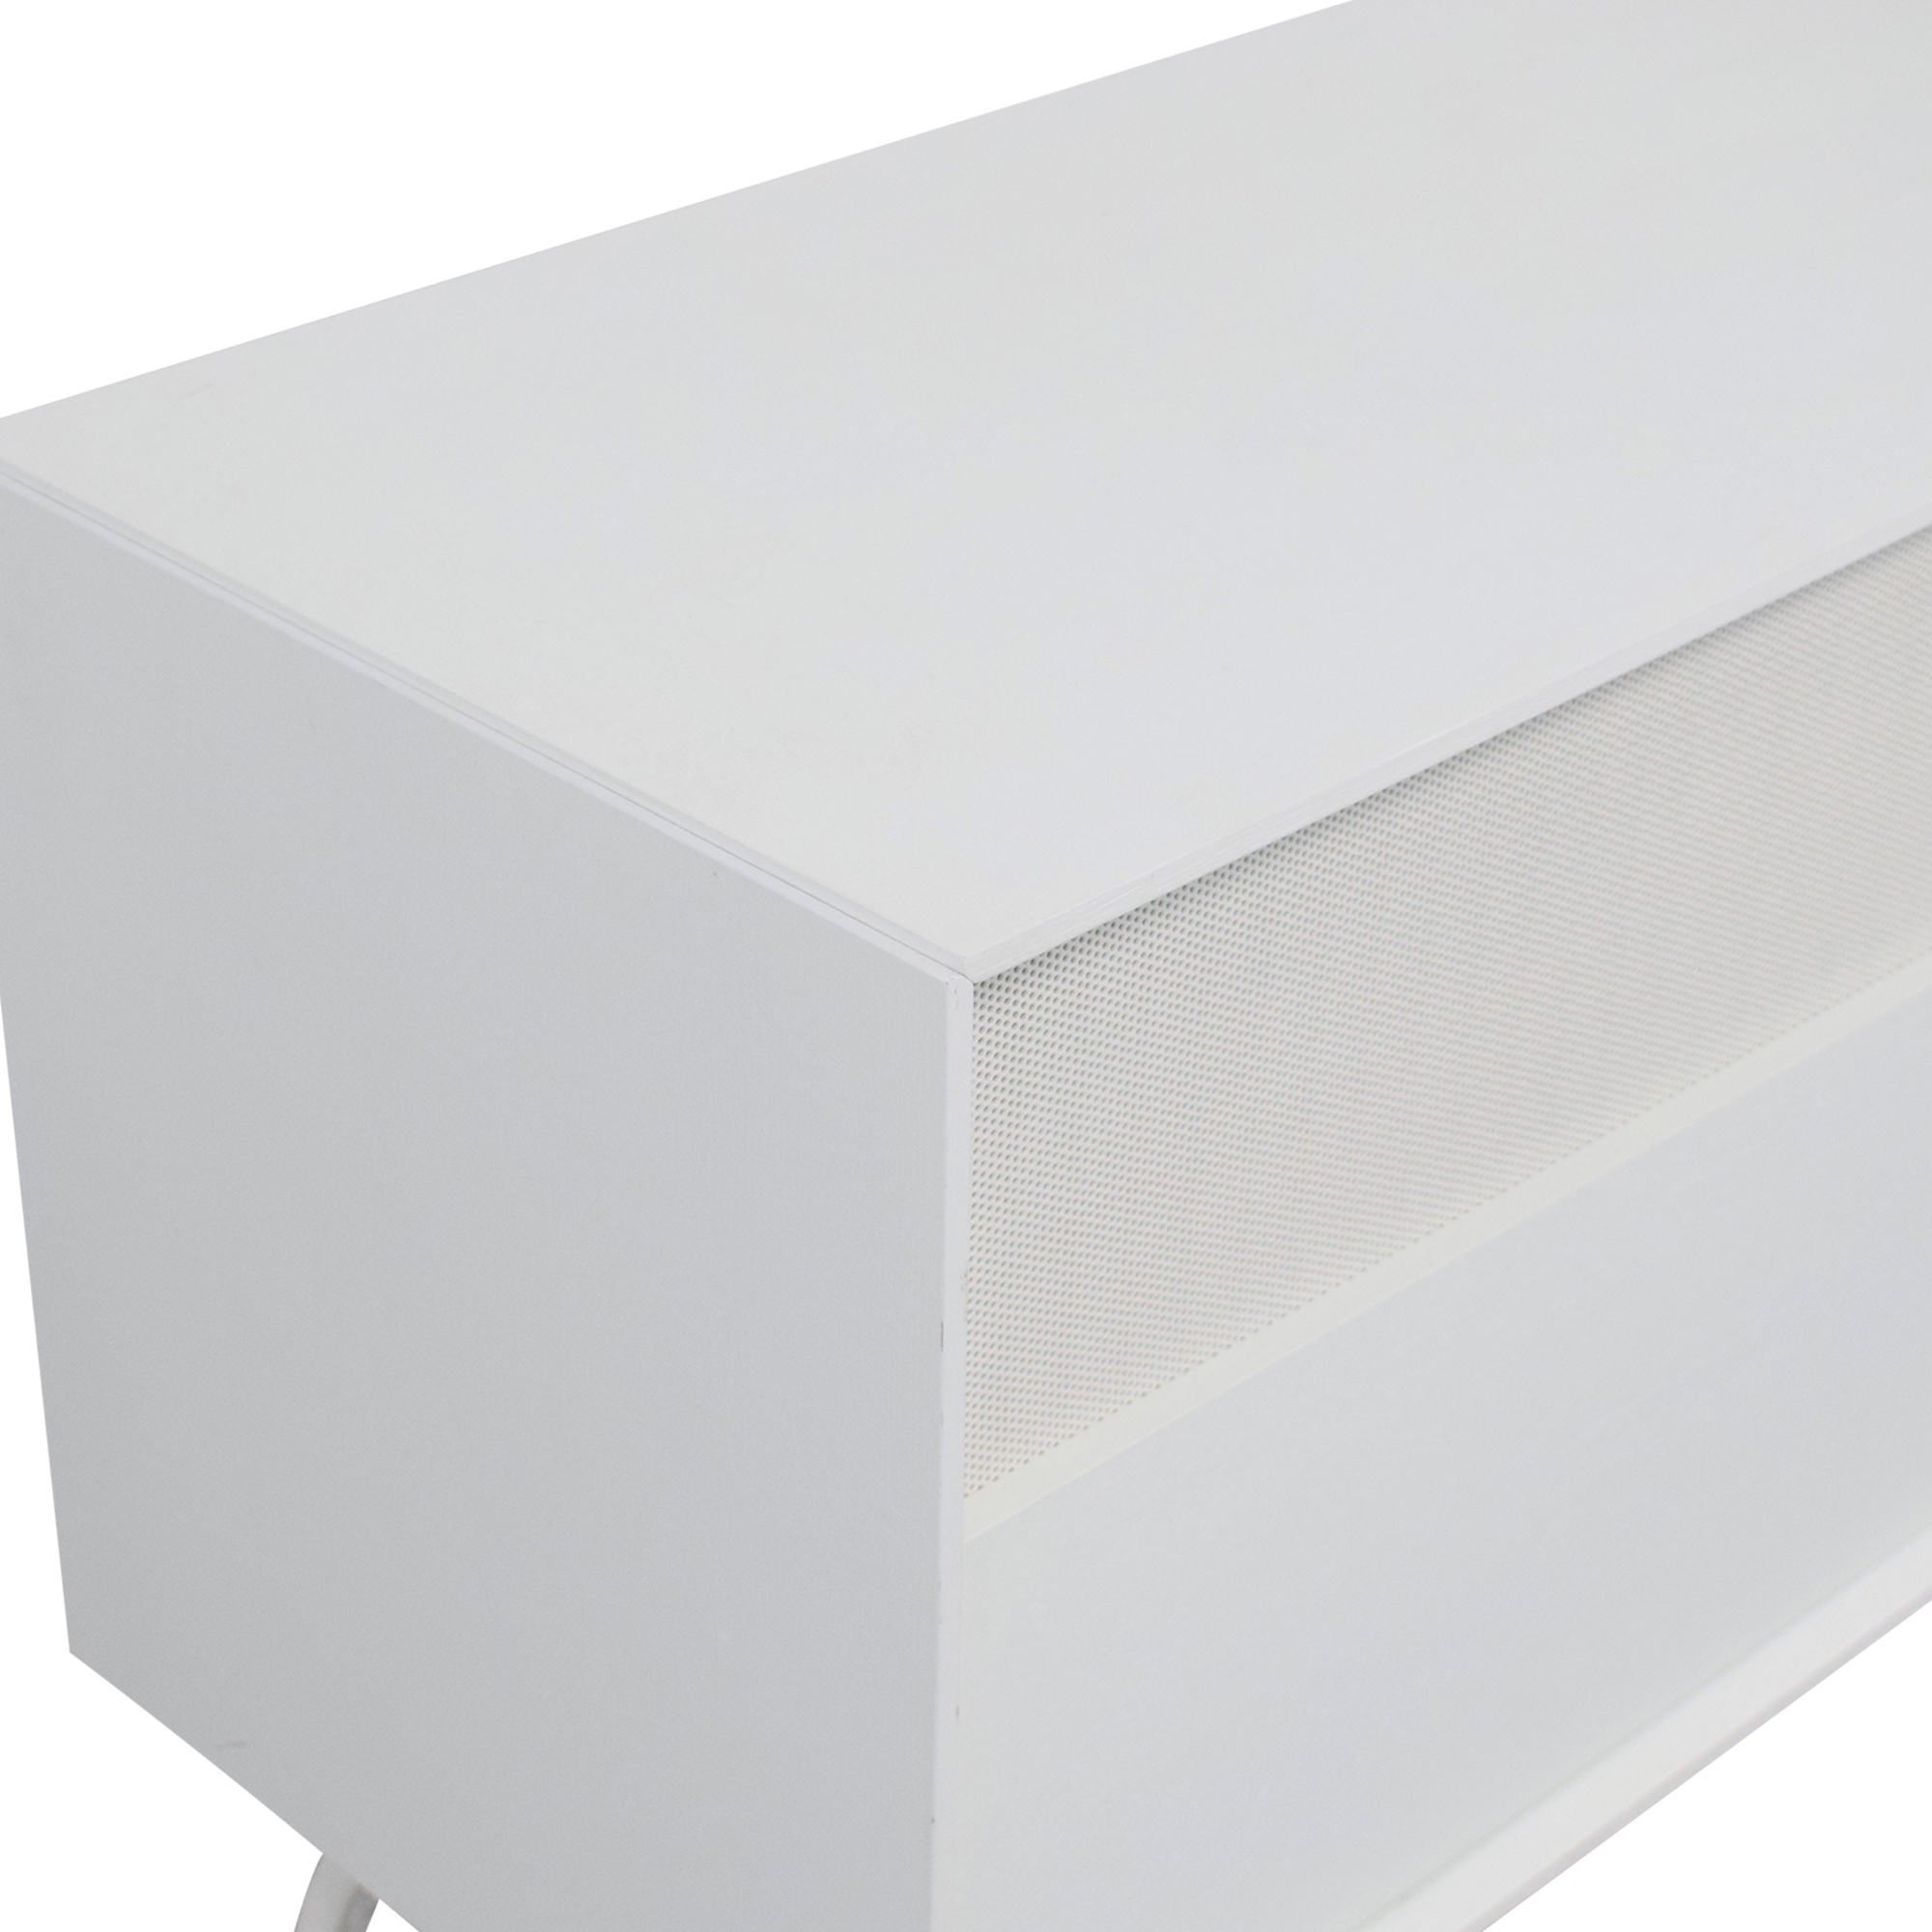 Blu Dot Blu Dot Dang 2 Door / 2 Drawer Console dimensions